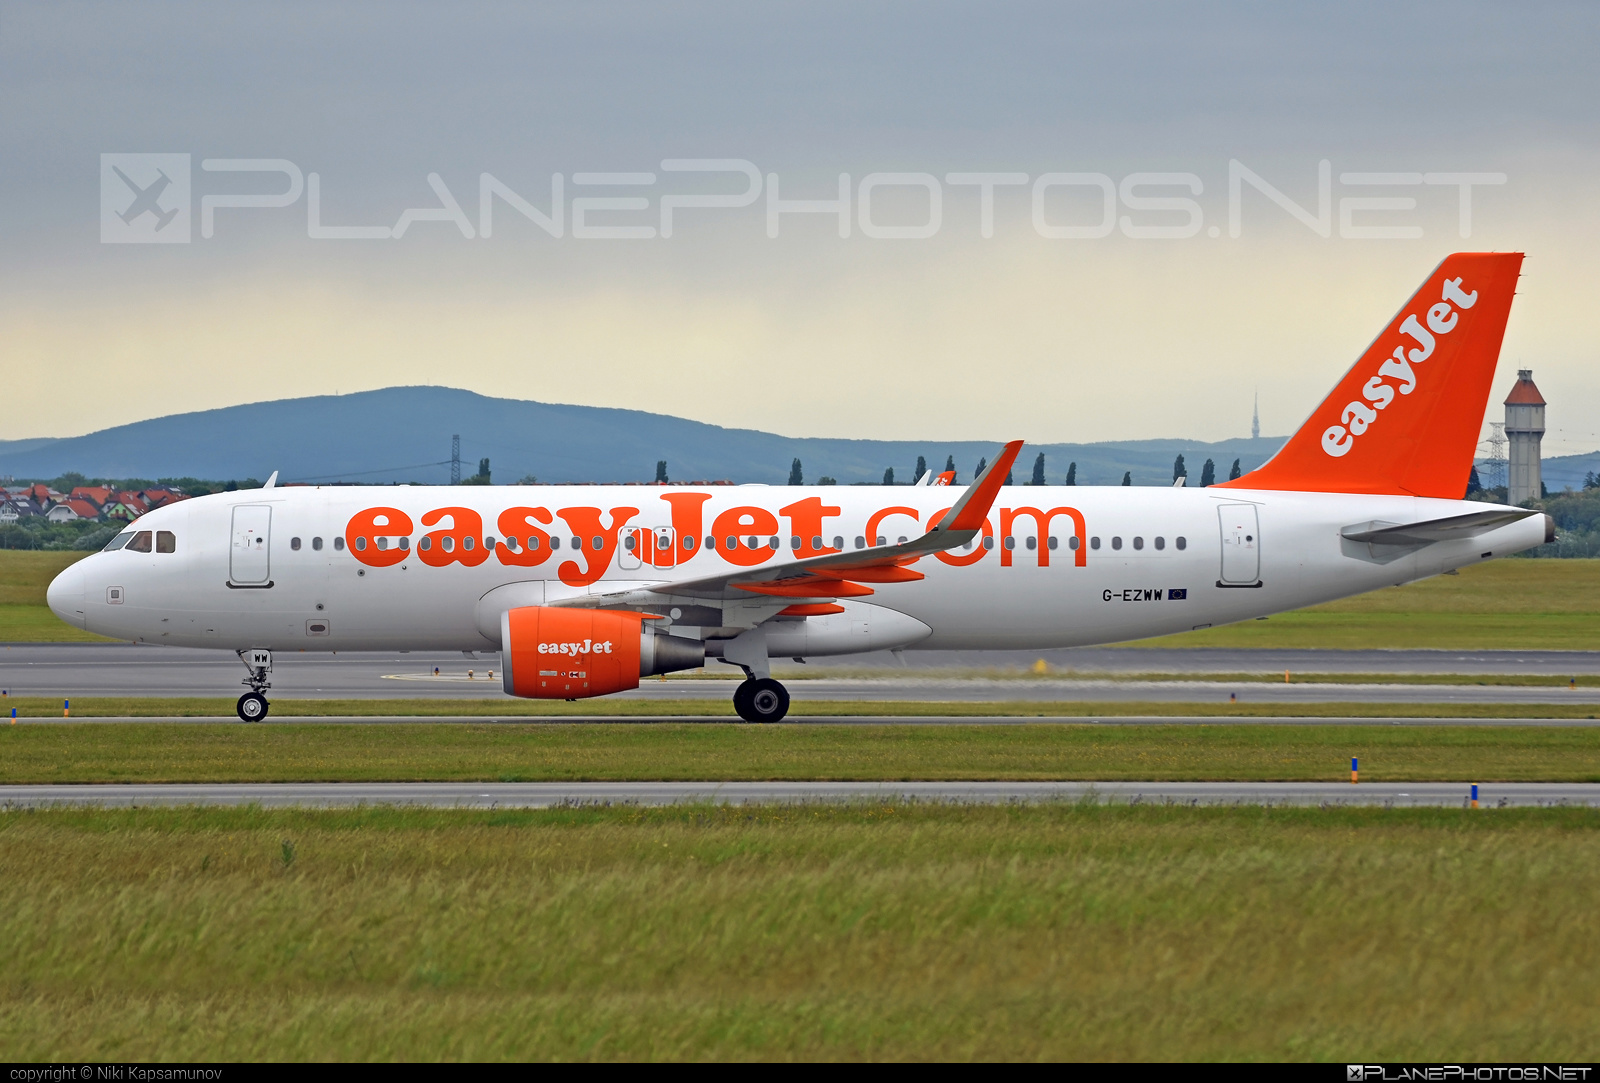 Airbus A320-214 - G-EZWW operated by easyJet #a320 #a320family #airbus #airbus320 #easyjet